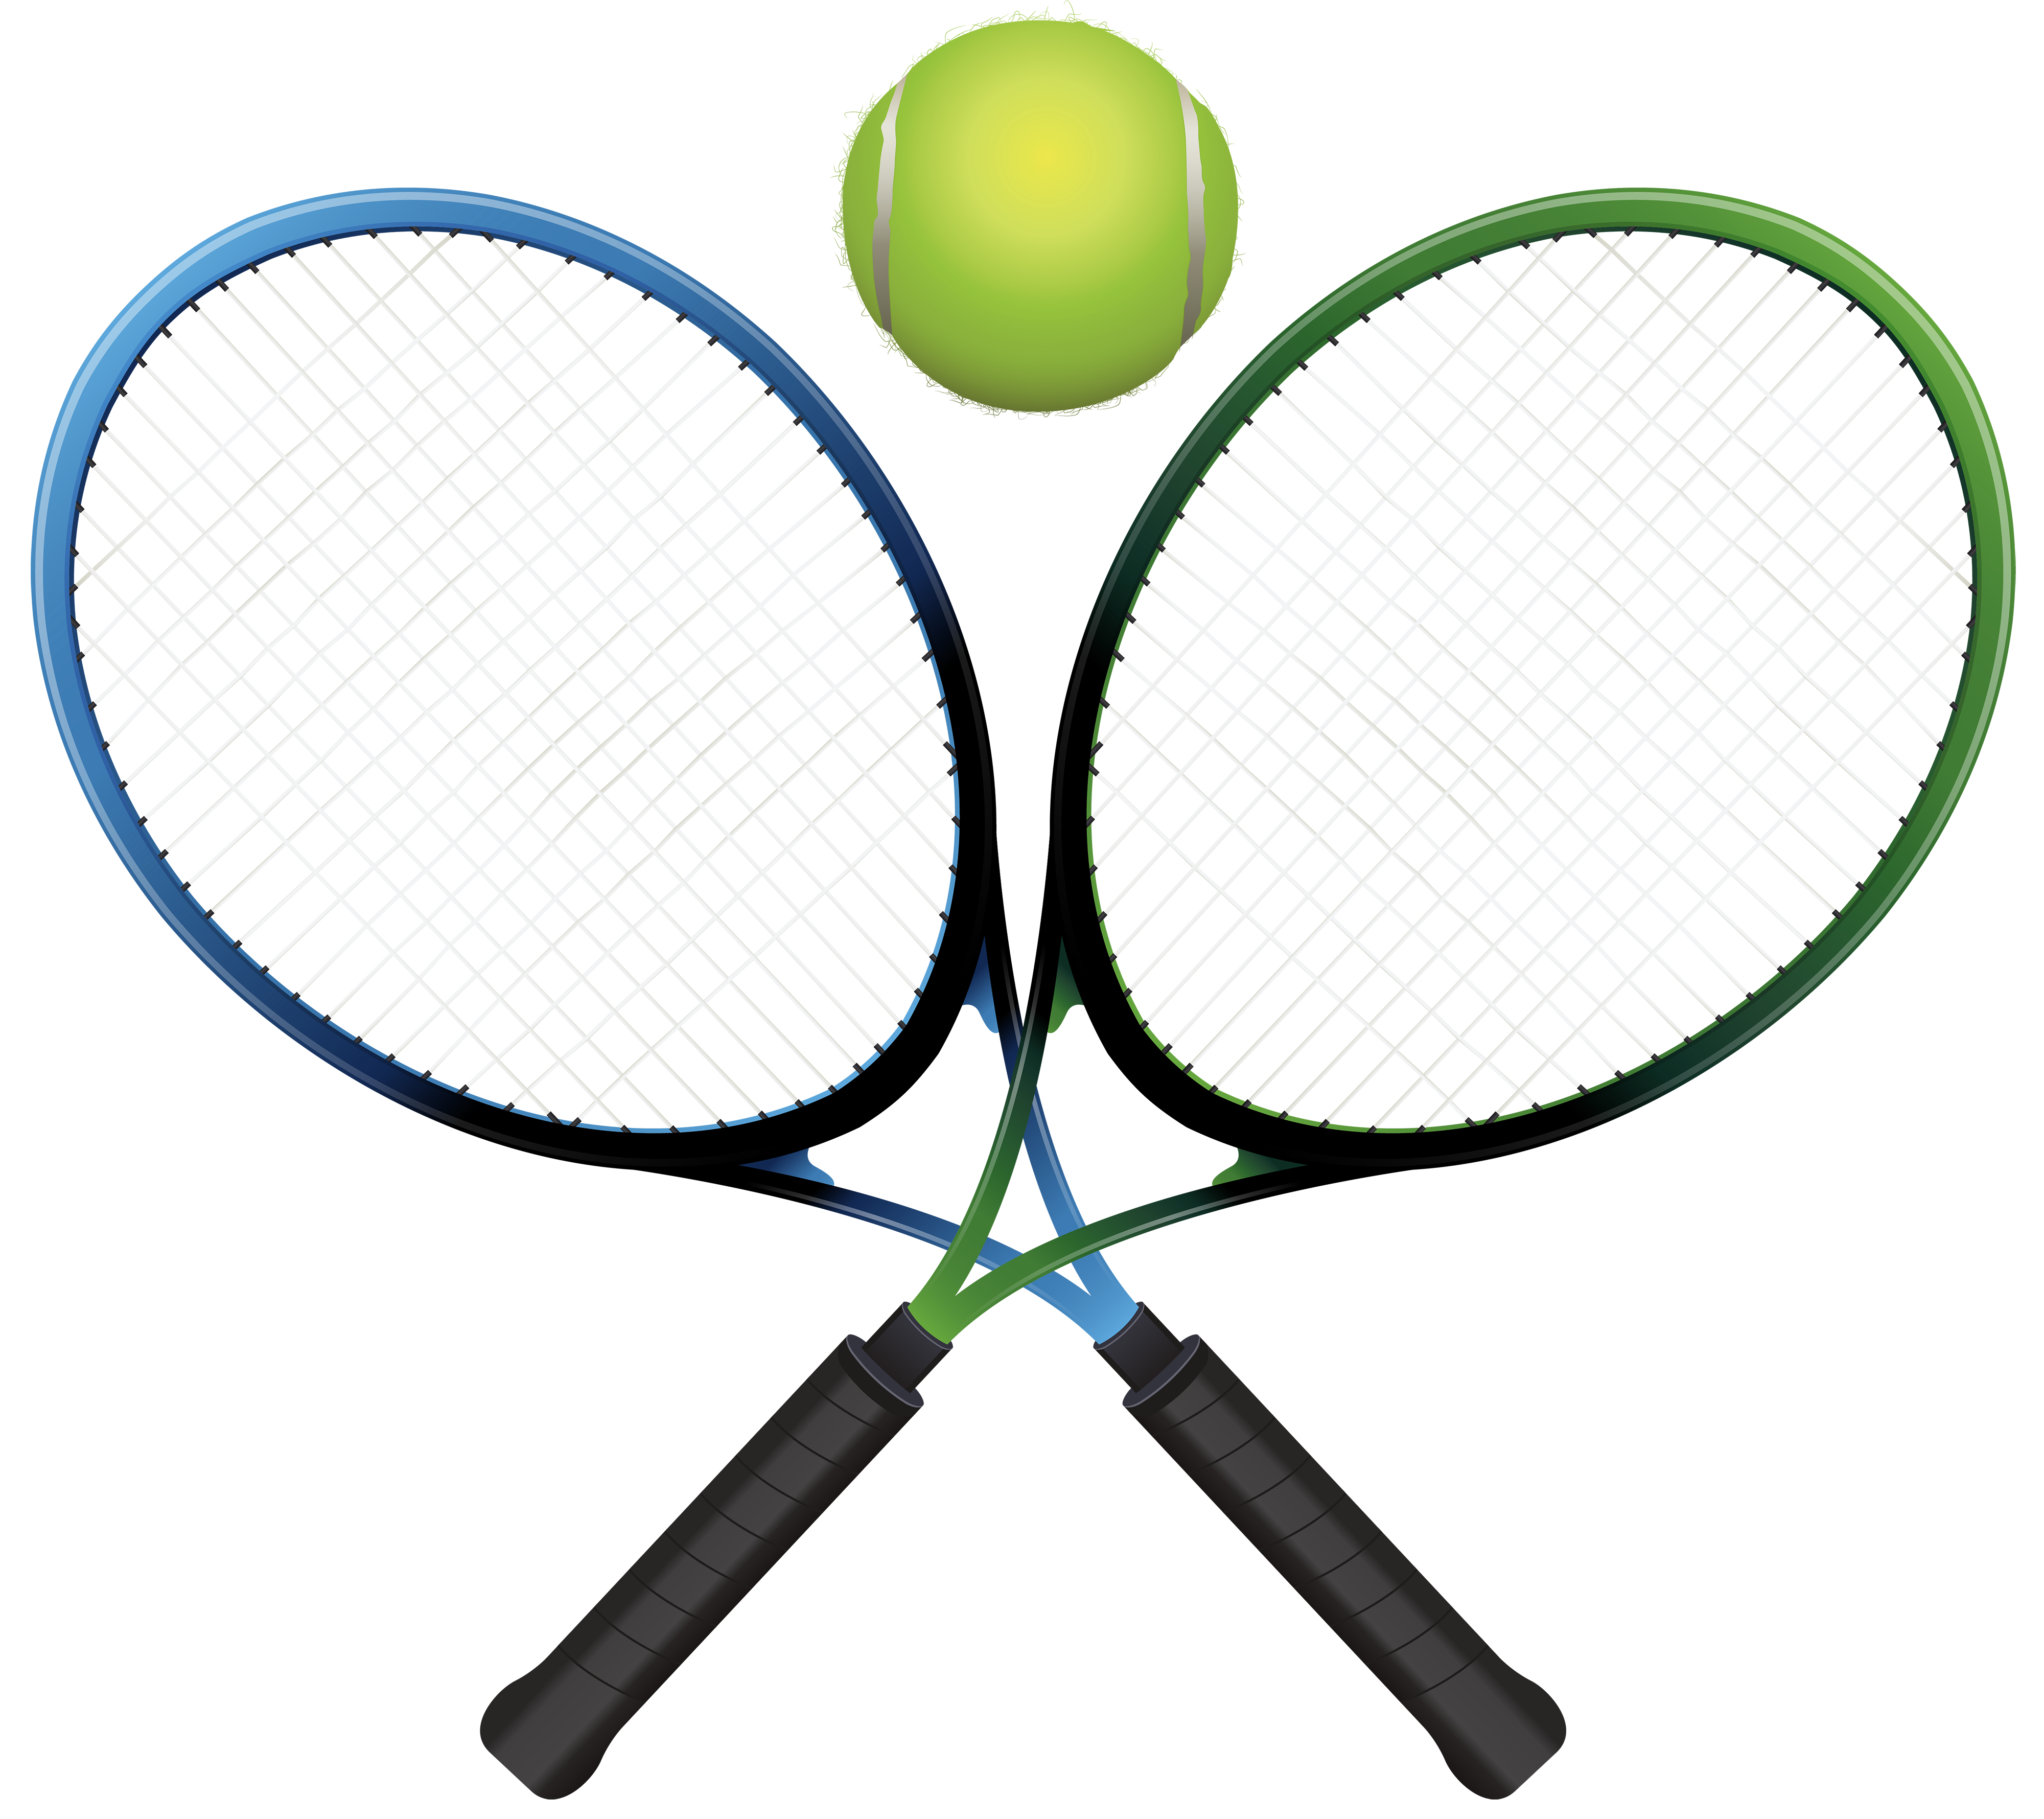 Tennis clip art crab free clipart images clipartcow 2